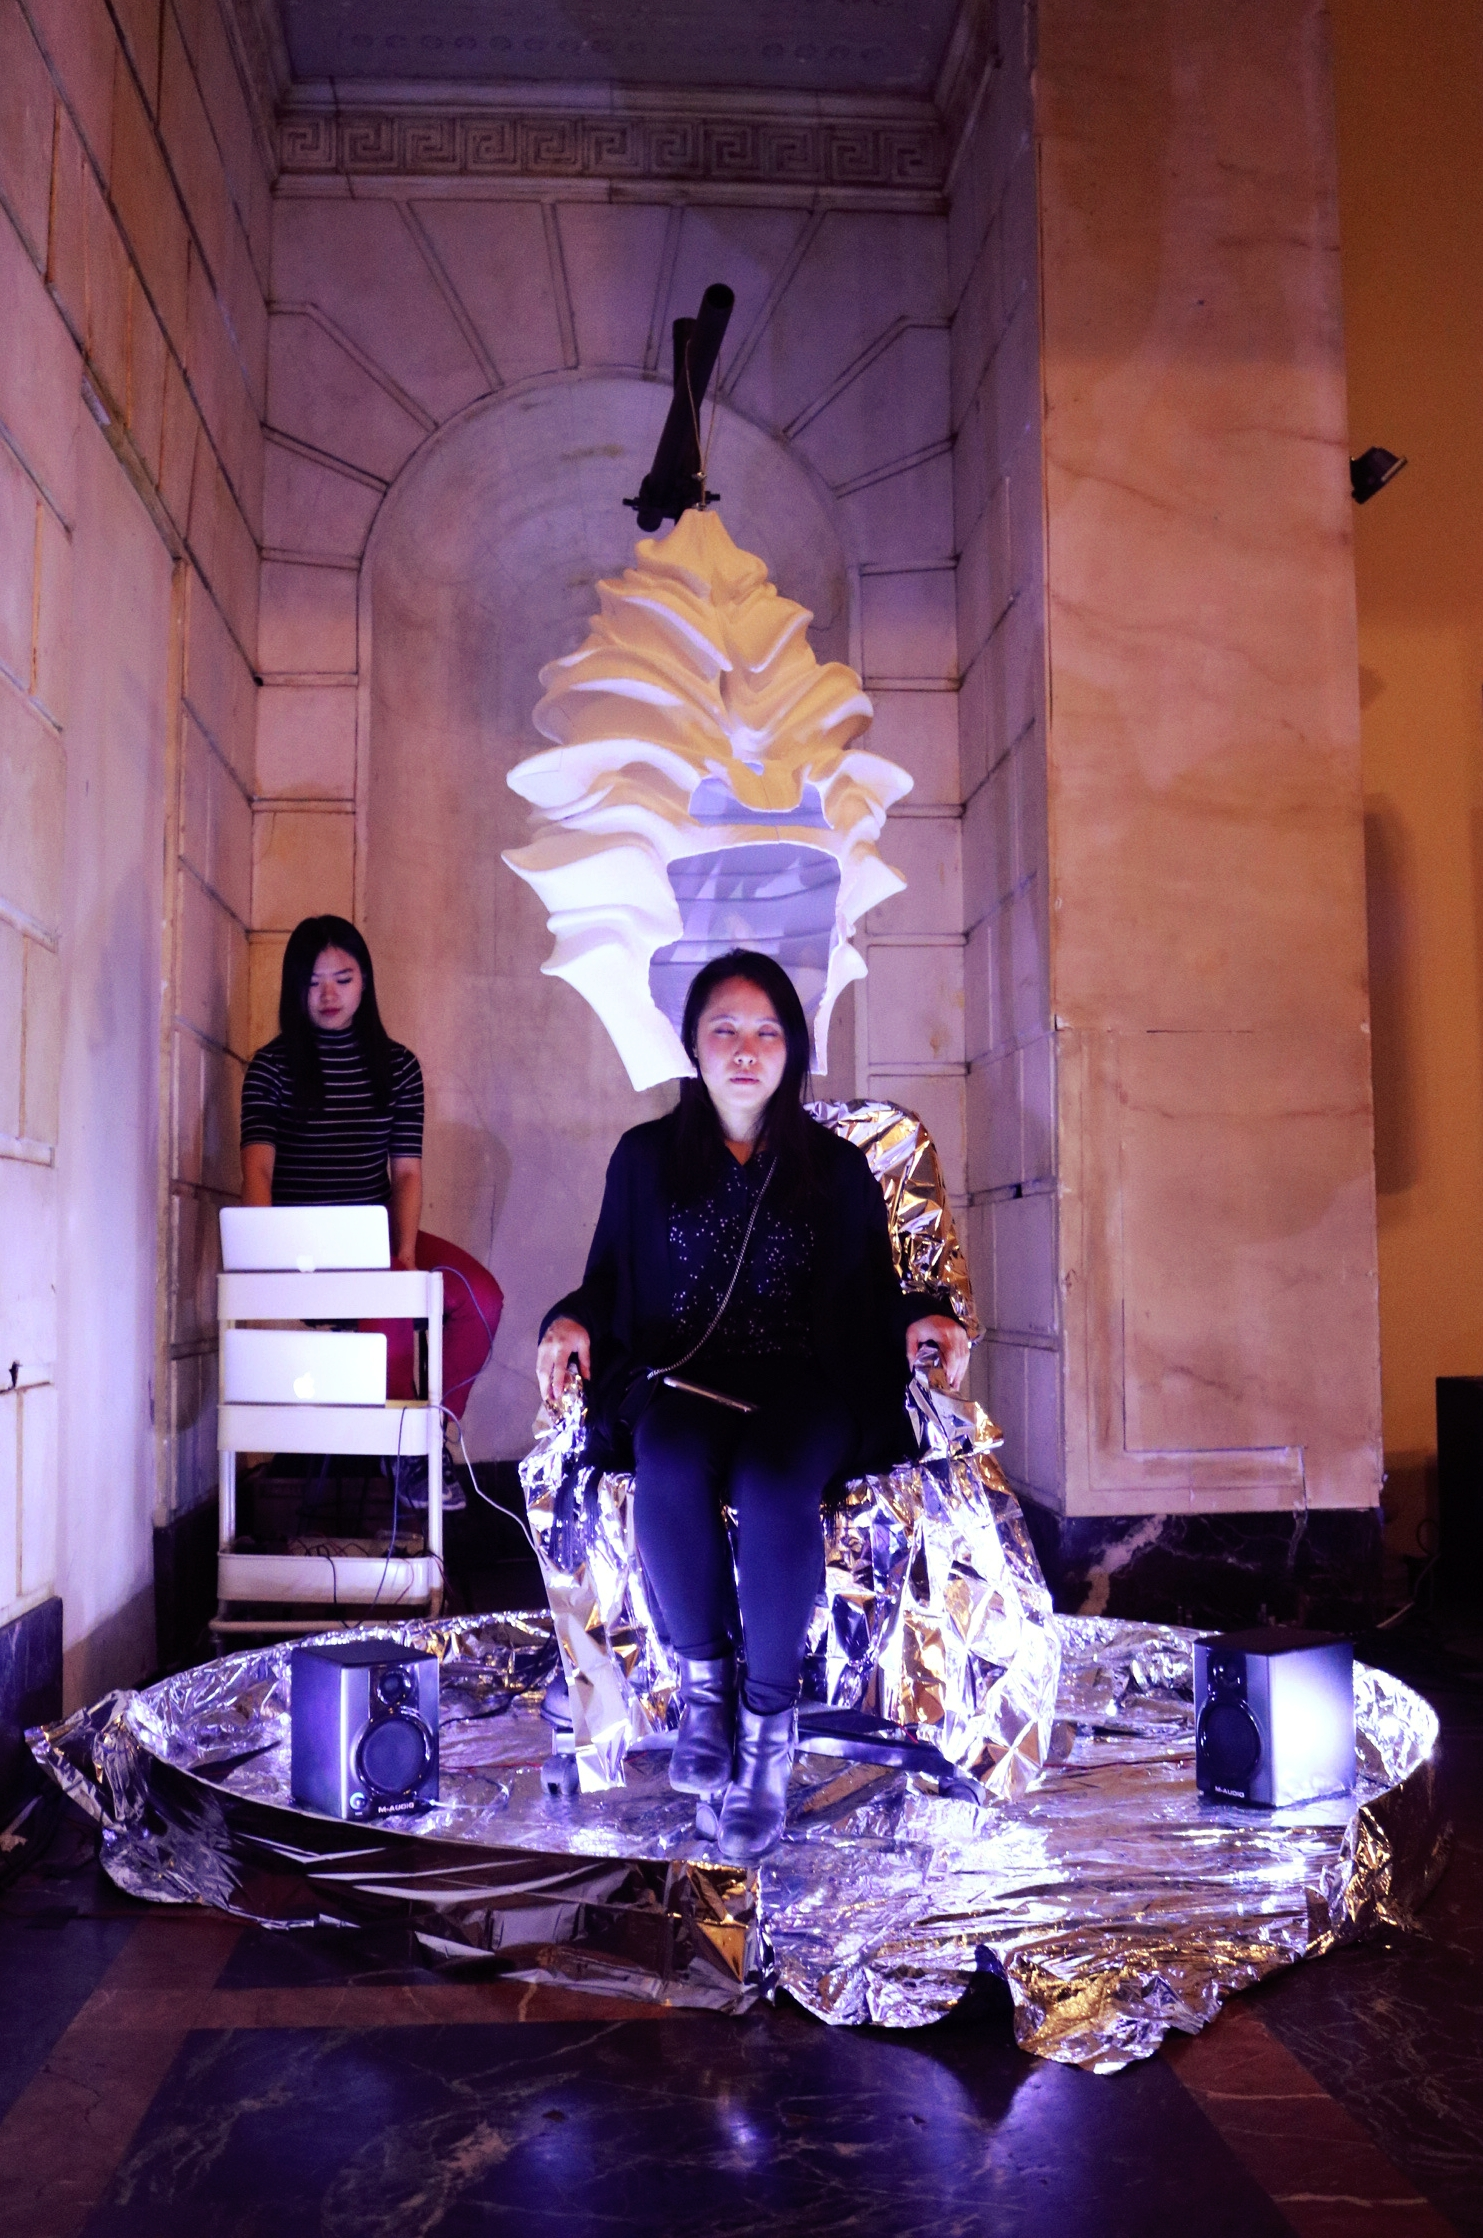 Into the Shell  at the Imagine Science Festival, ISSUE Project Room Brooklyn, NY 12 October 2018